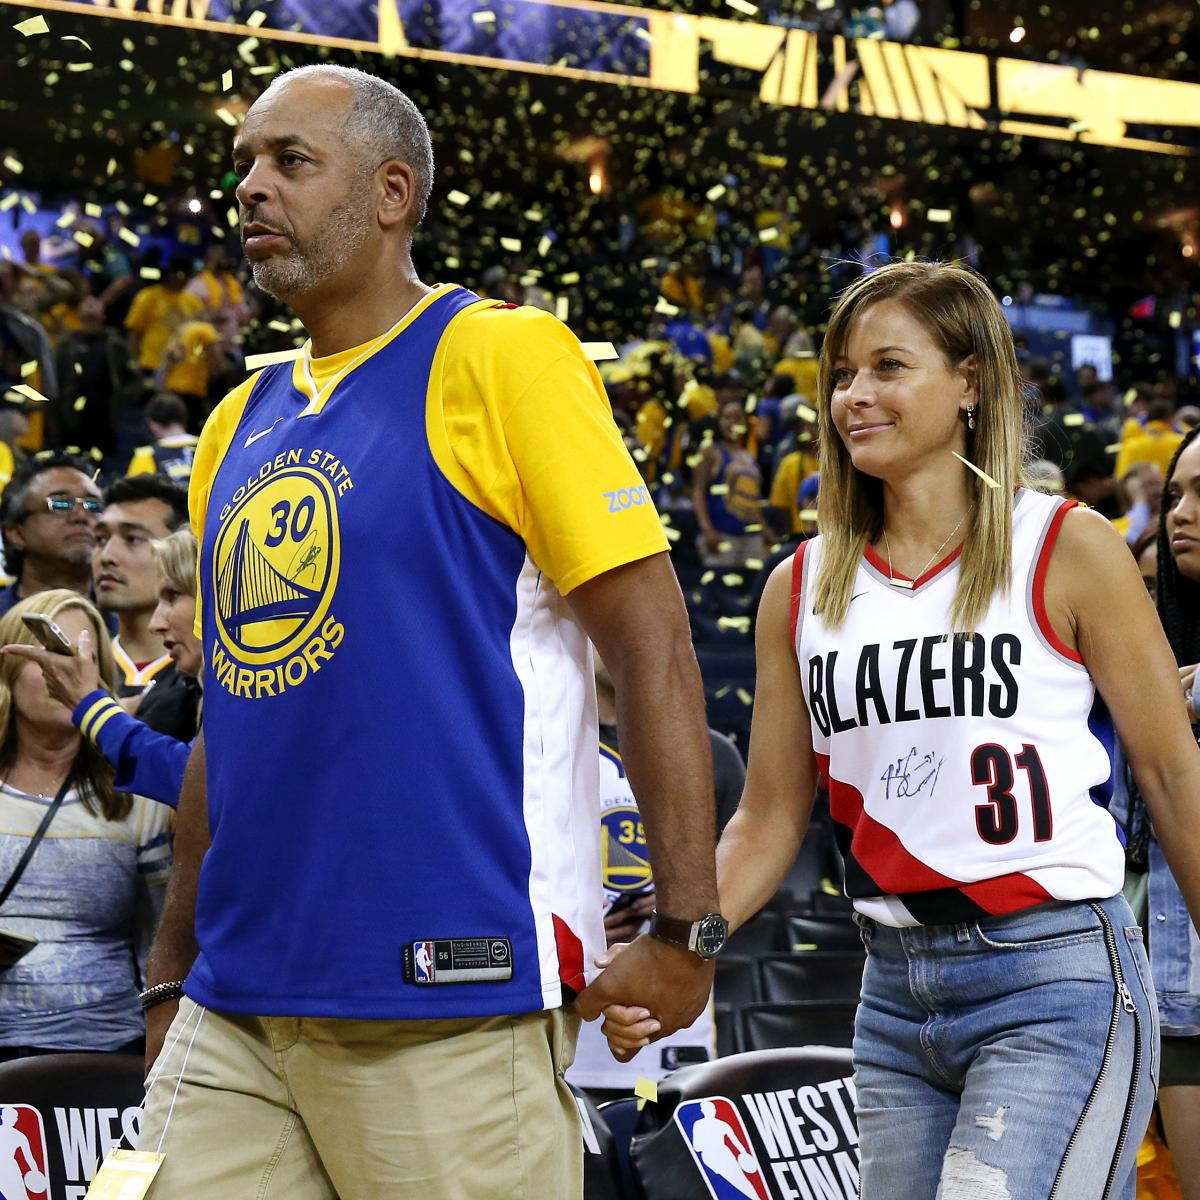 Sonya and Dell Curry received a cold reception as they returned to their hotel following the Golden State Warriors ' 106-105 victory over the Toronto Raptors in Game 5 of the 2019 NBA Finals ...